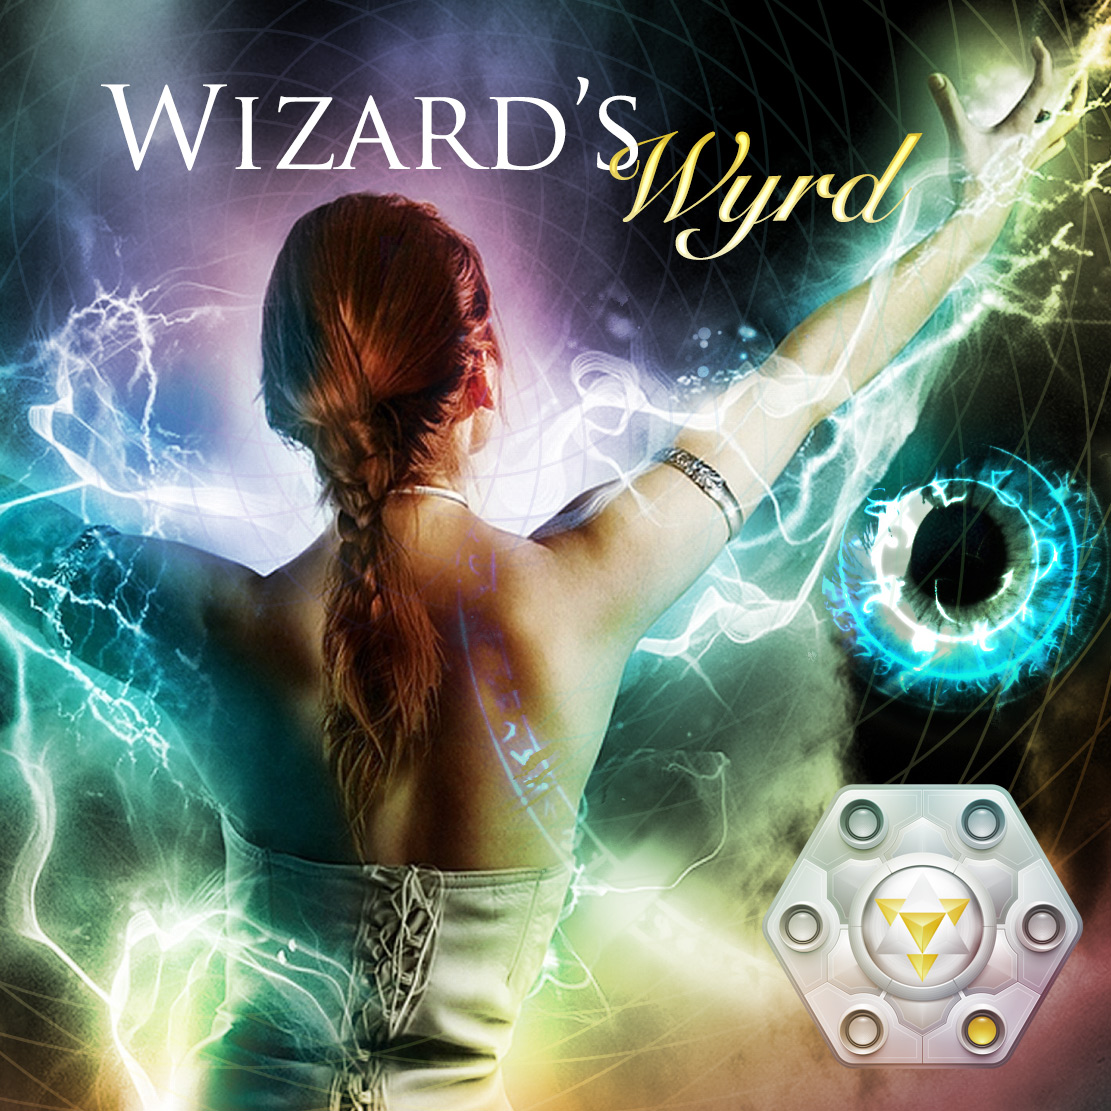 Wizard's Wyrd Series